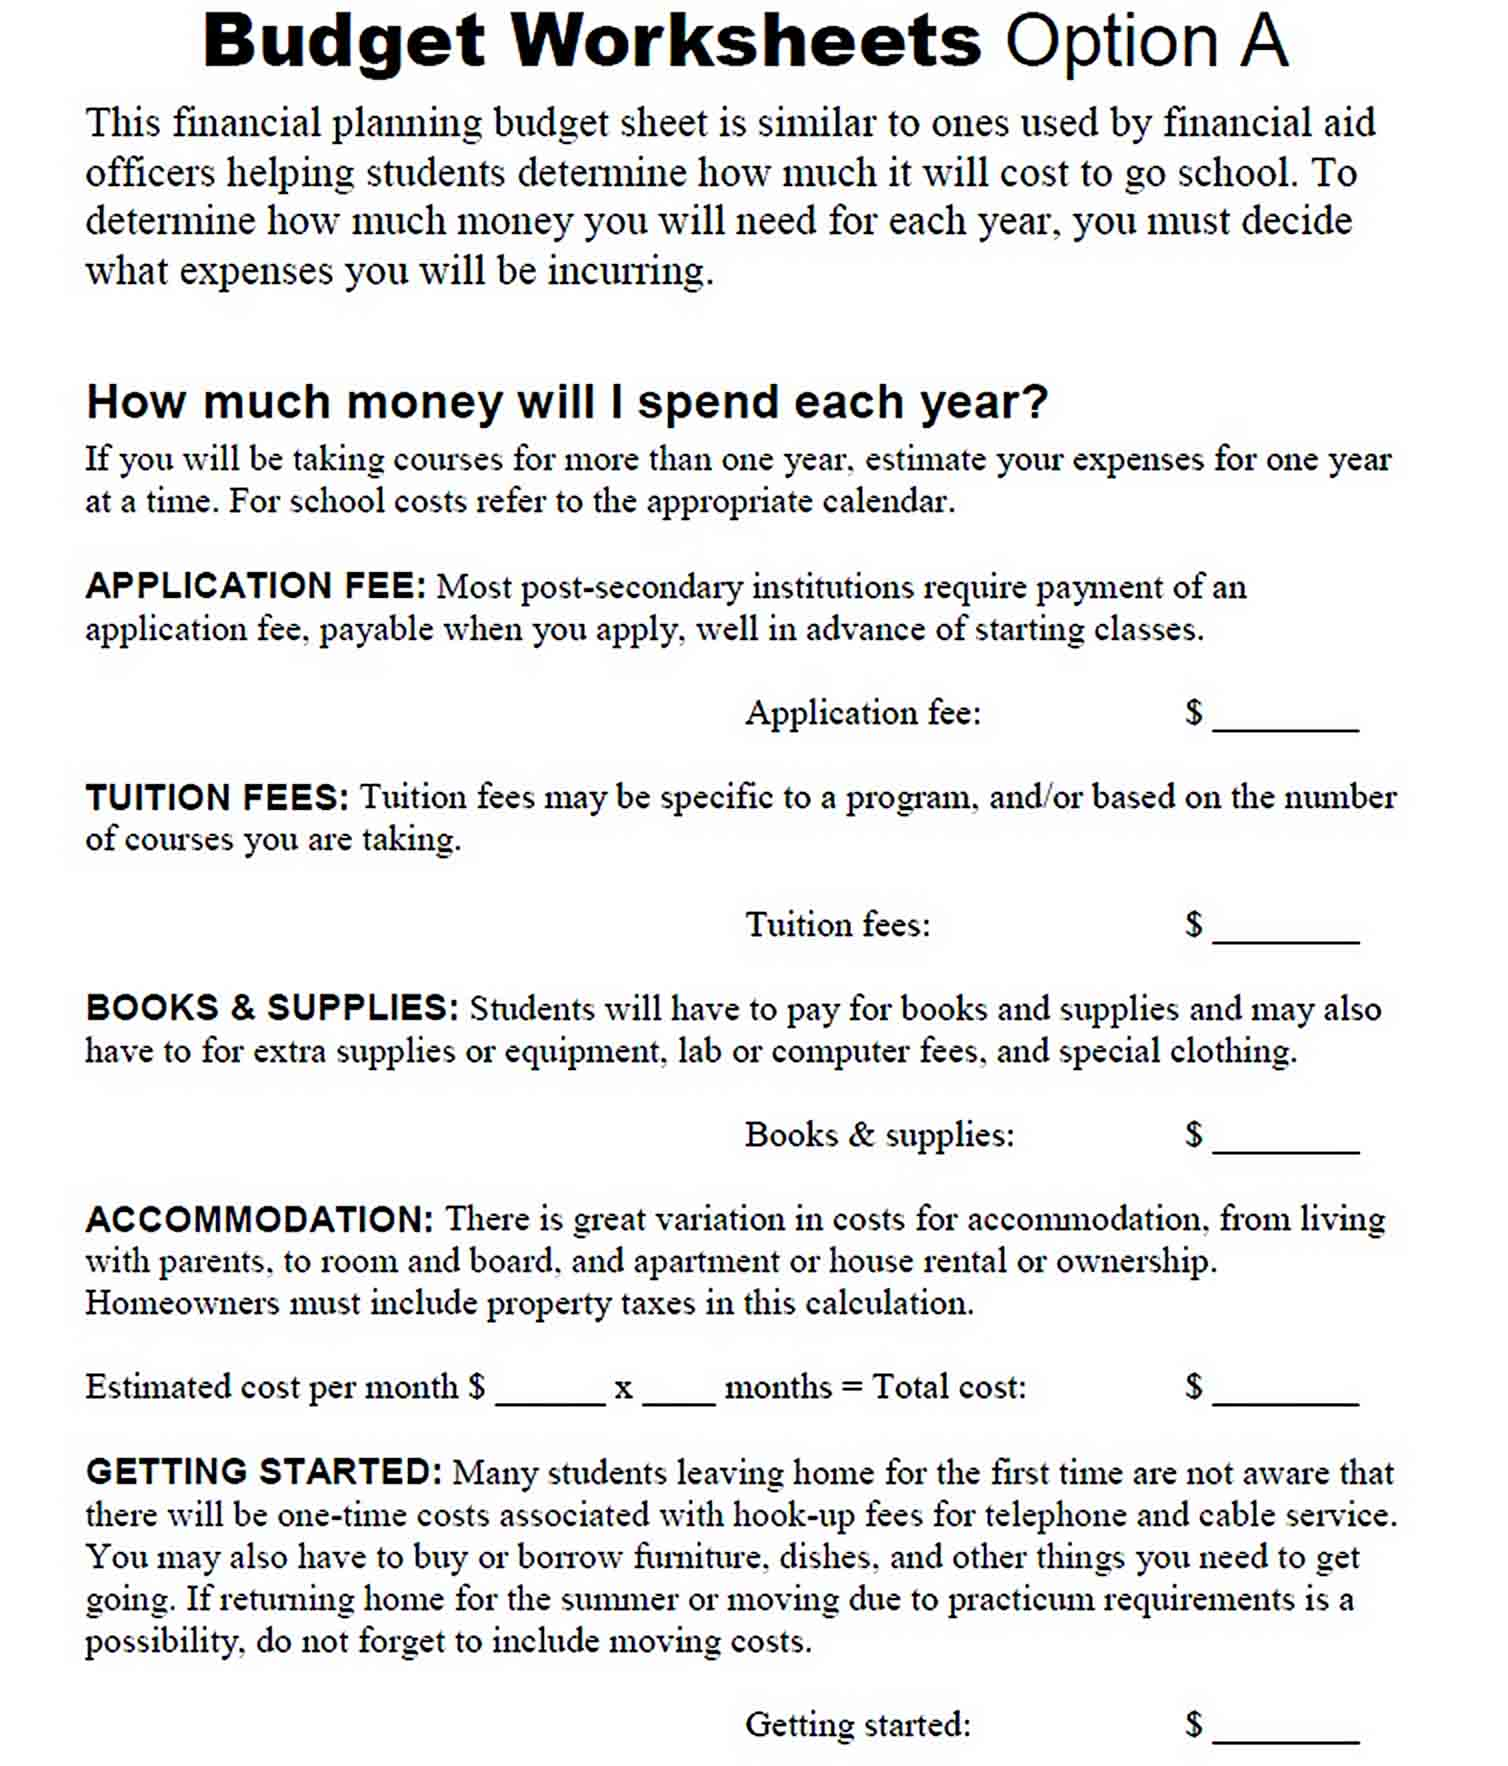 FINANCIAL PLANNING BUDGET SHEET sample